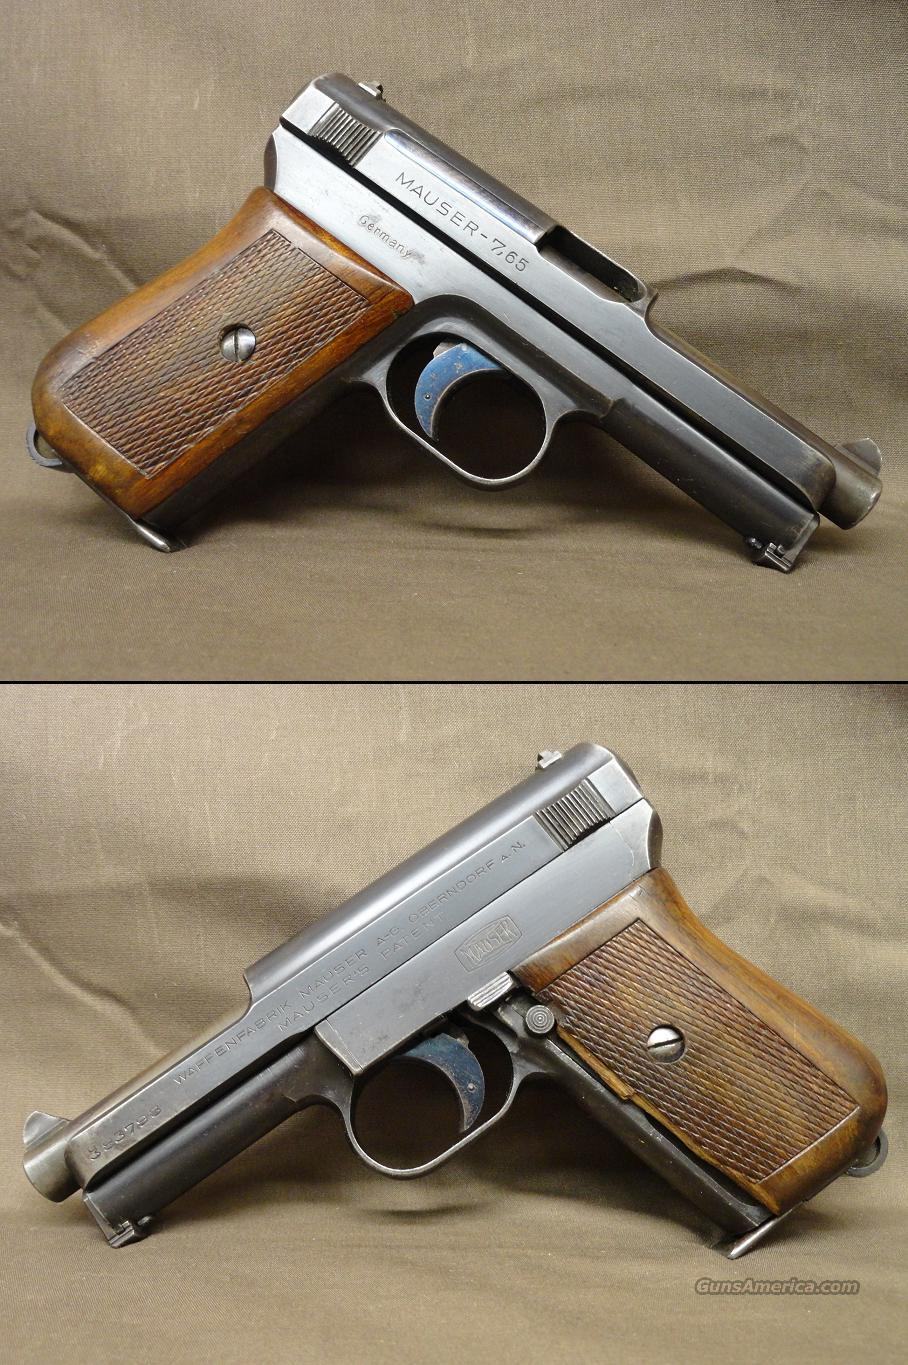 Mauser Model 1914 7.65mm (.32acp) post WWI 1920s model  Guns > Pistols > Mauser Pistols